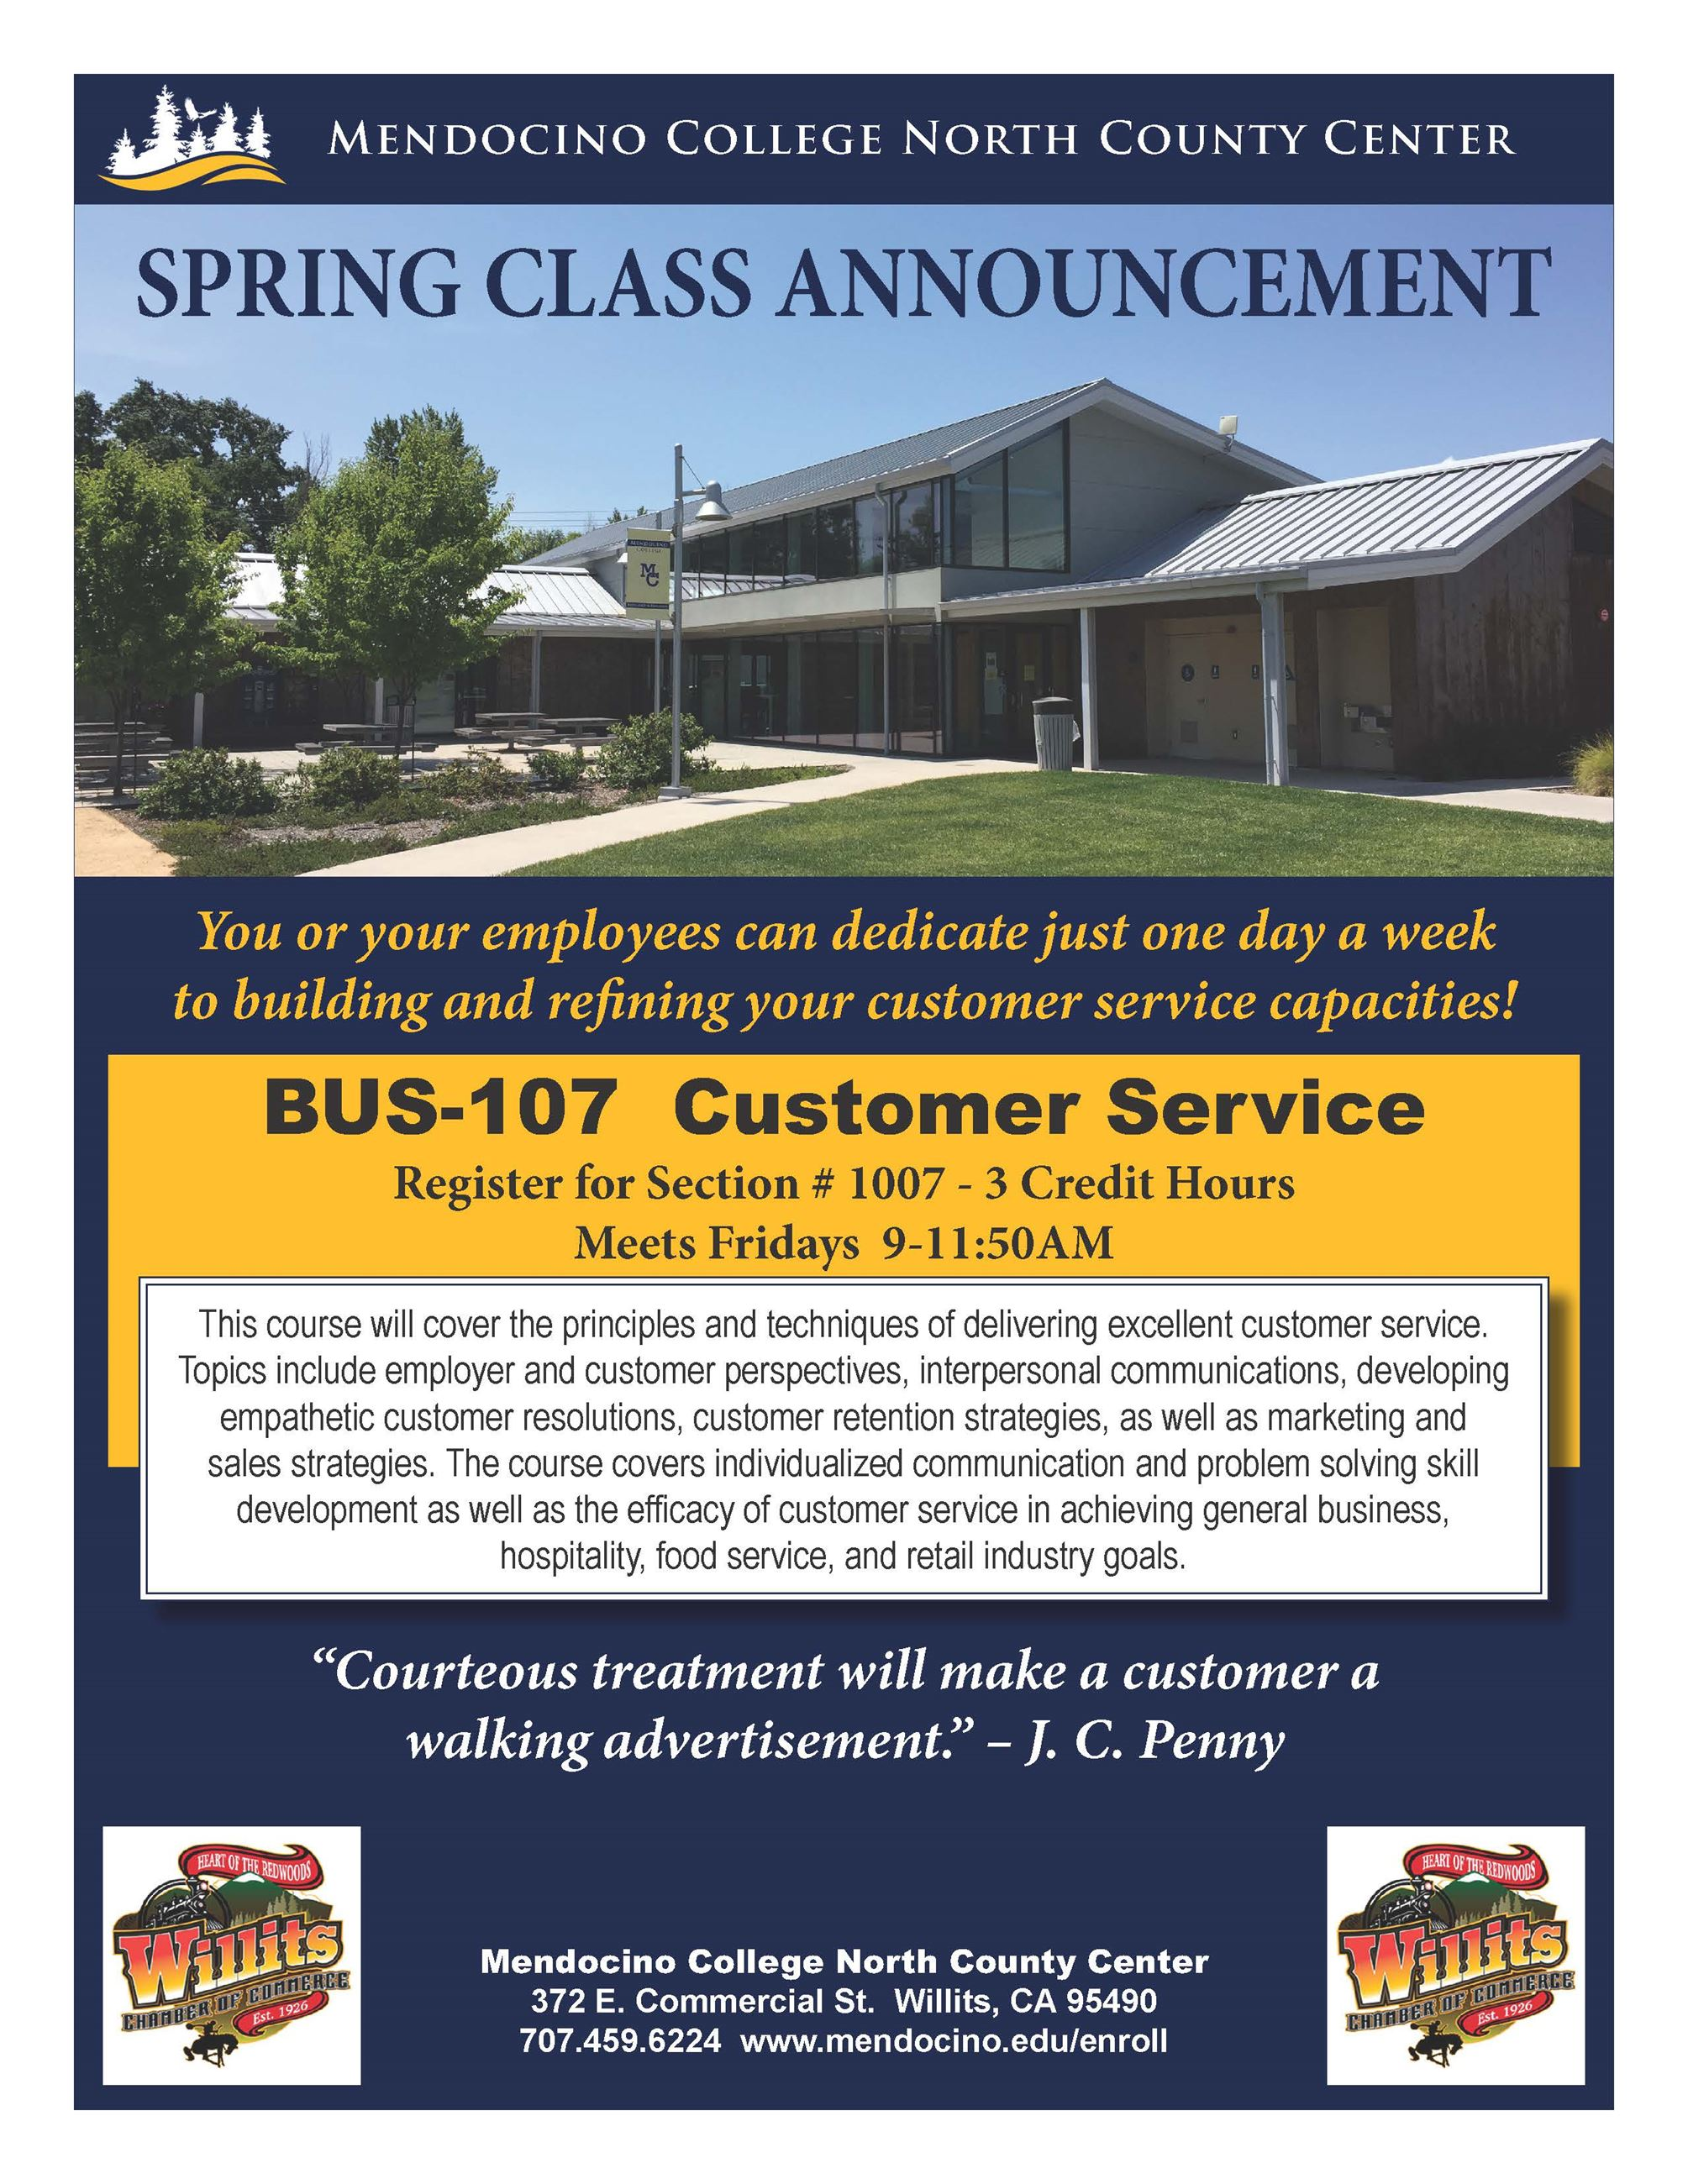 Mendocino_College_BUS-107_Flyer